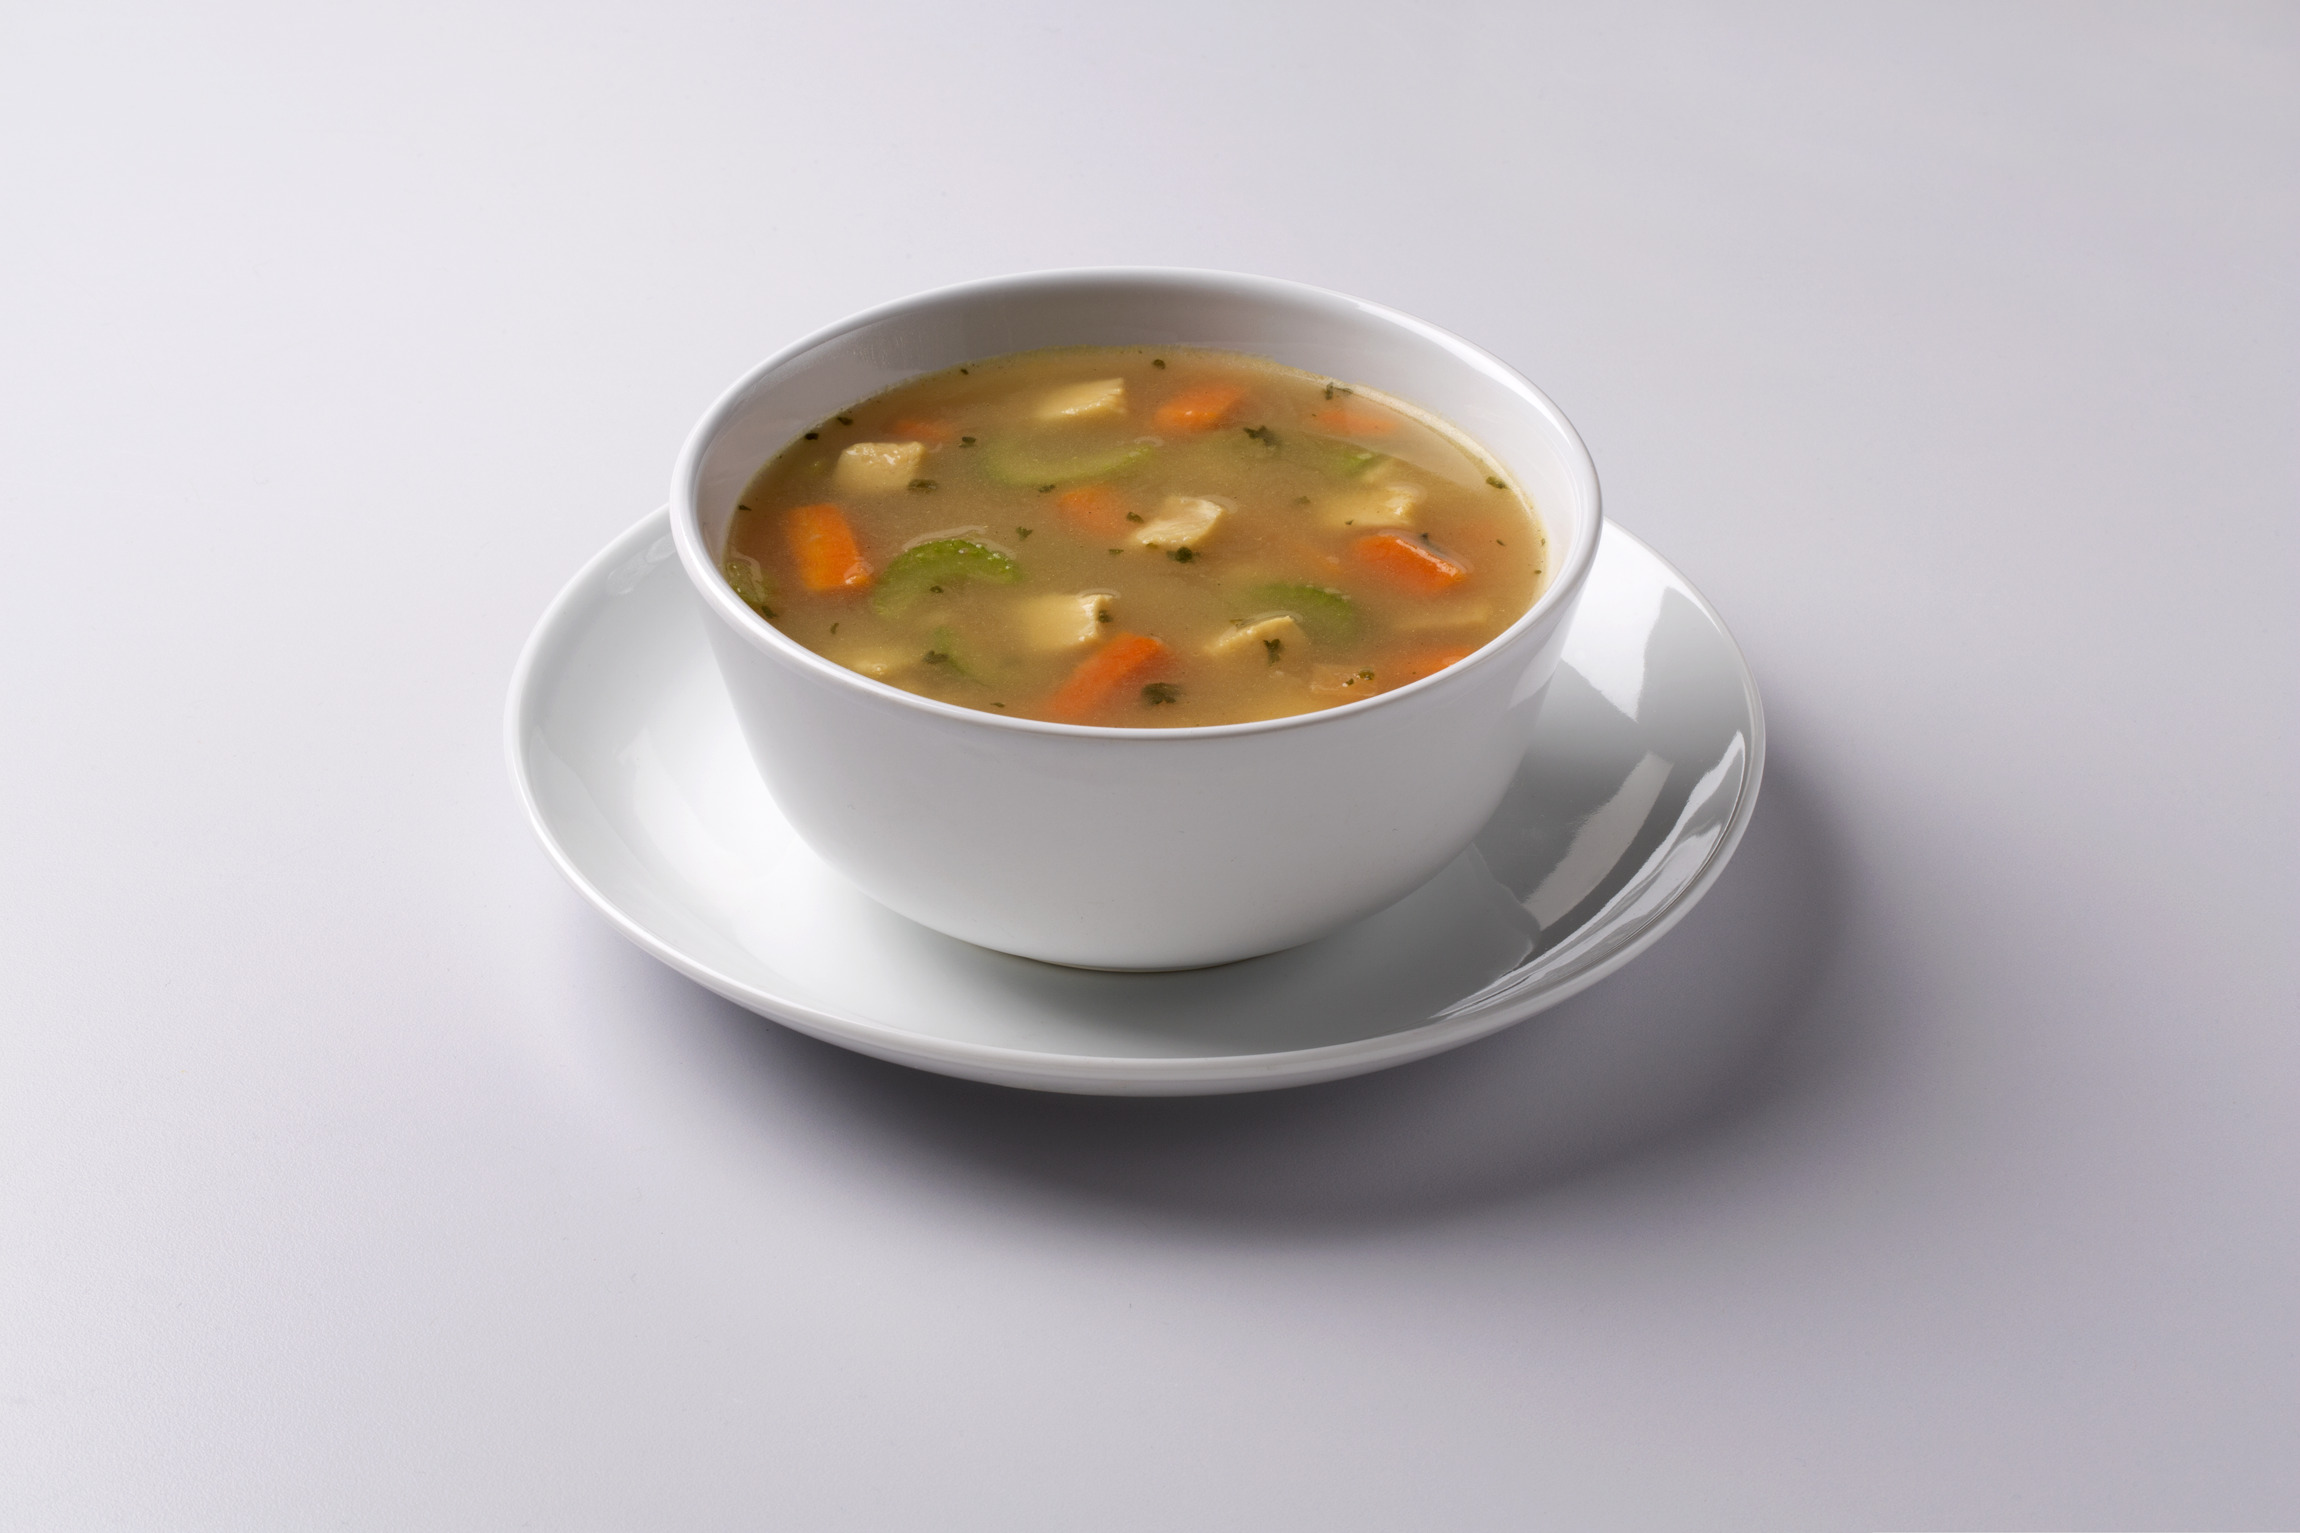 Chef Francisco Chicken Soup Starter, 8 lb. image